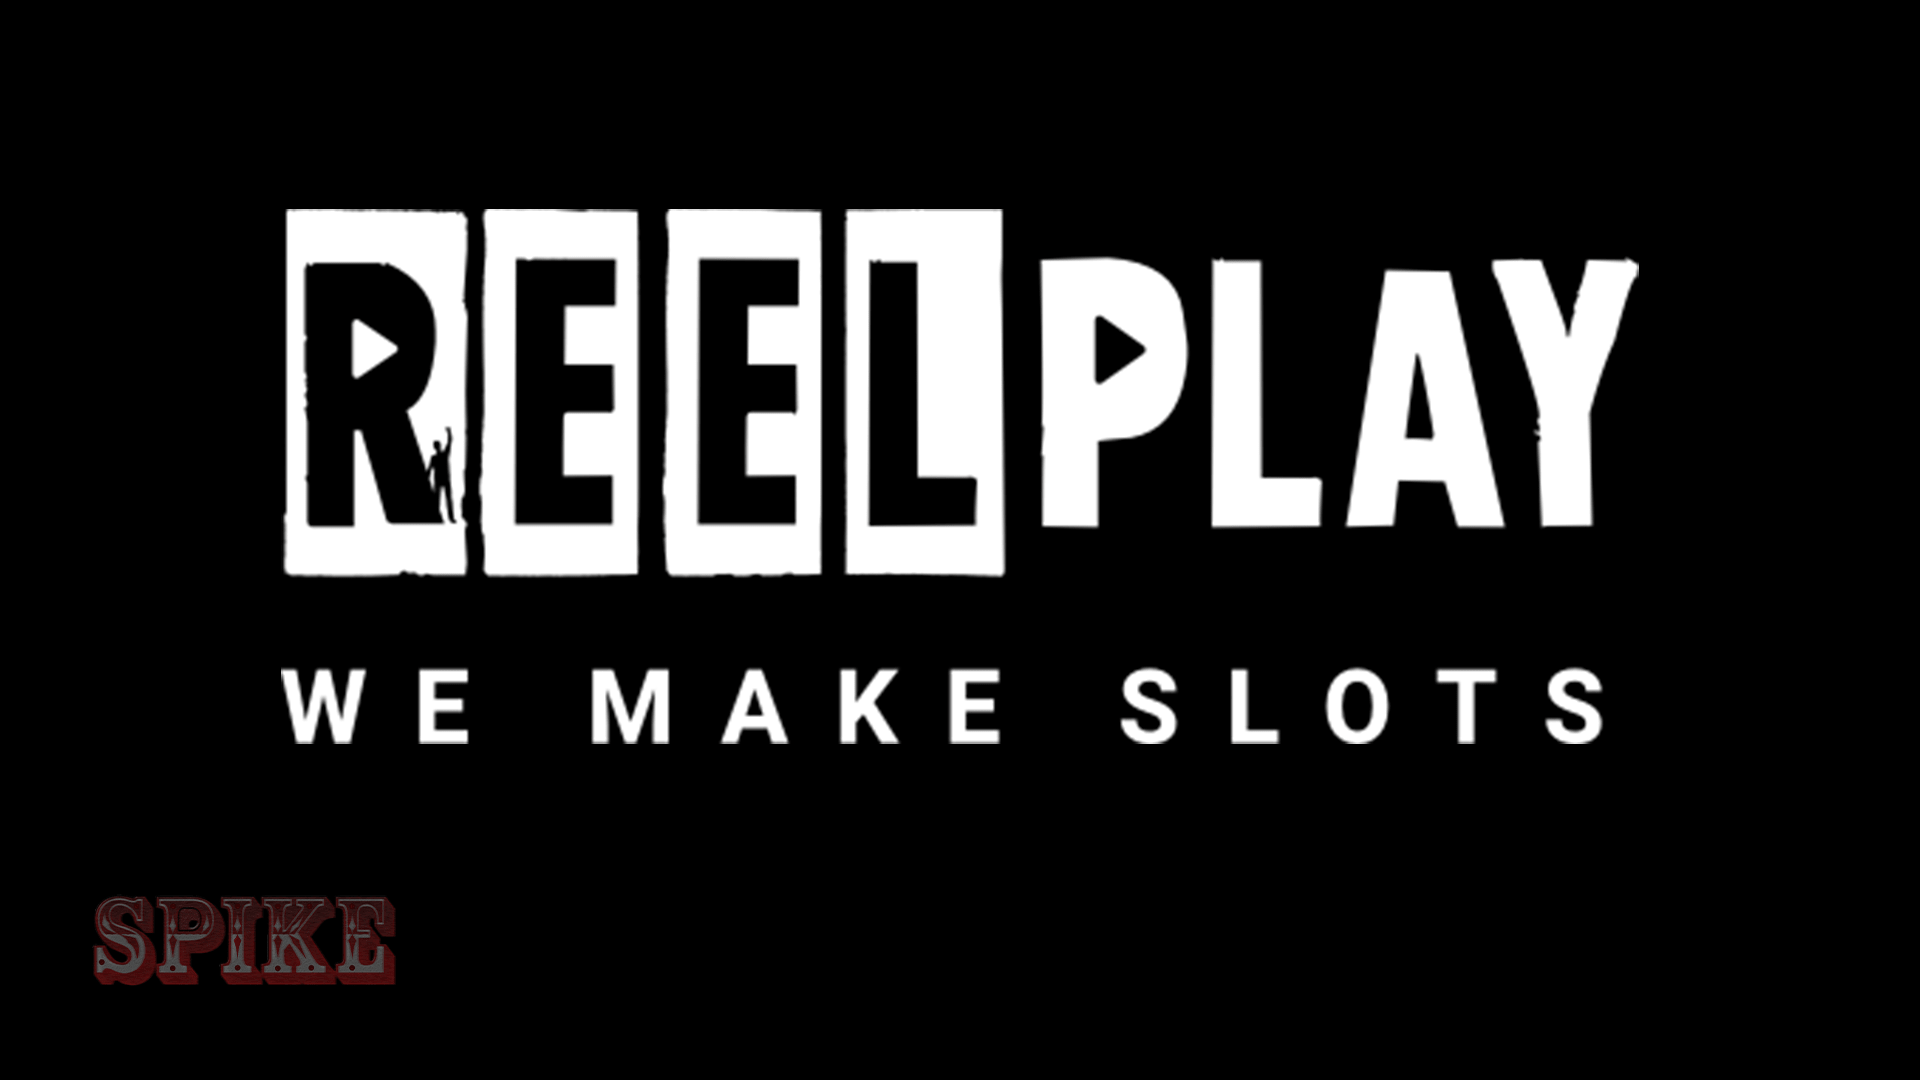 reelplay producer online slots free demo